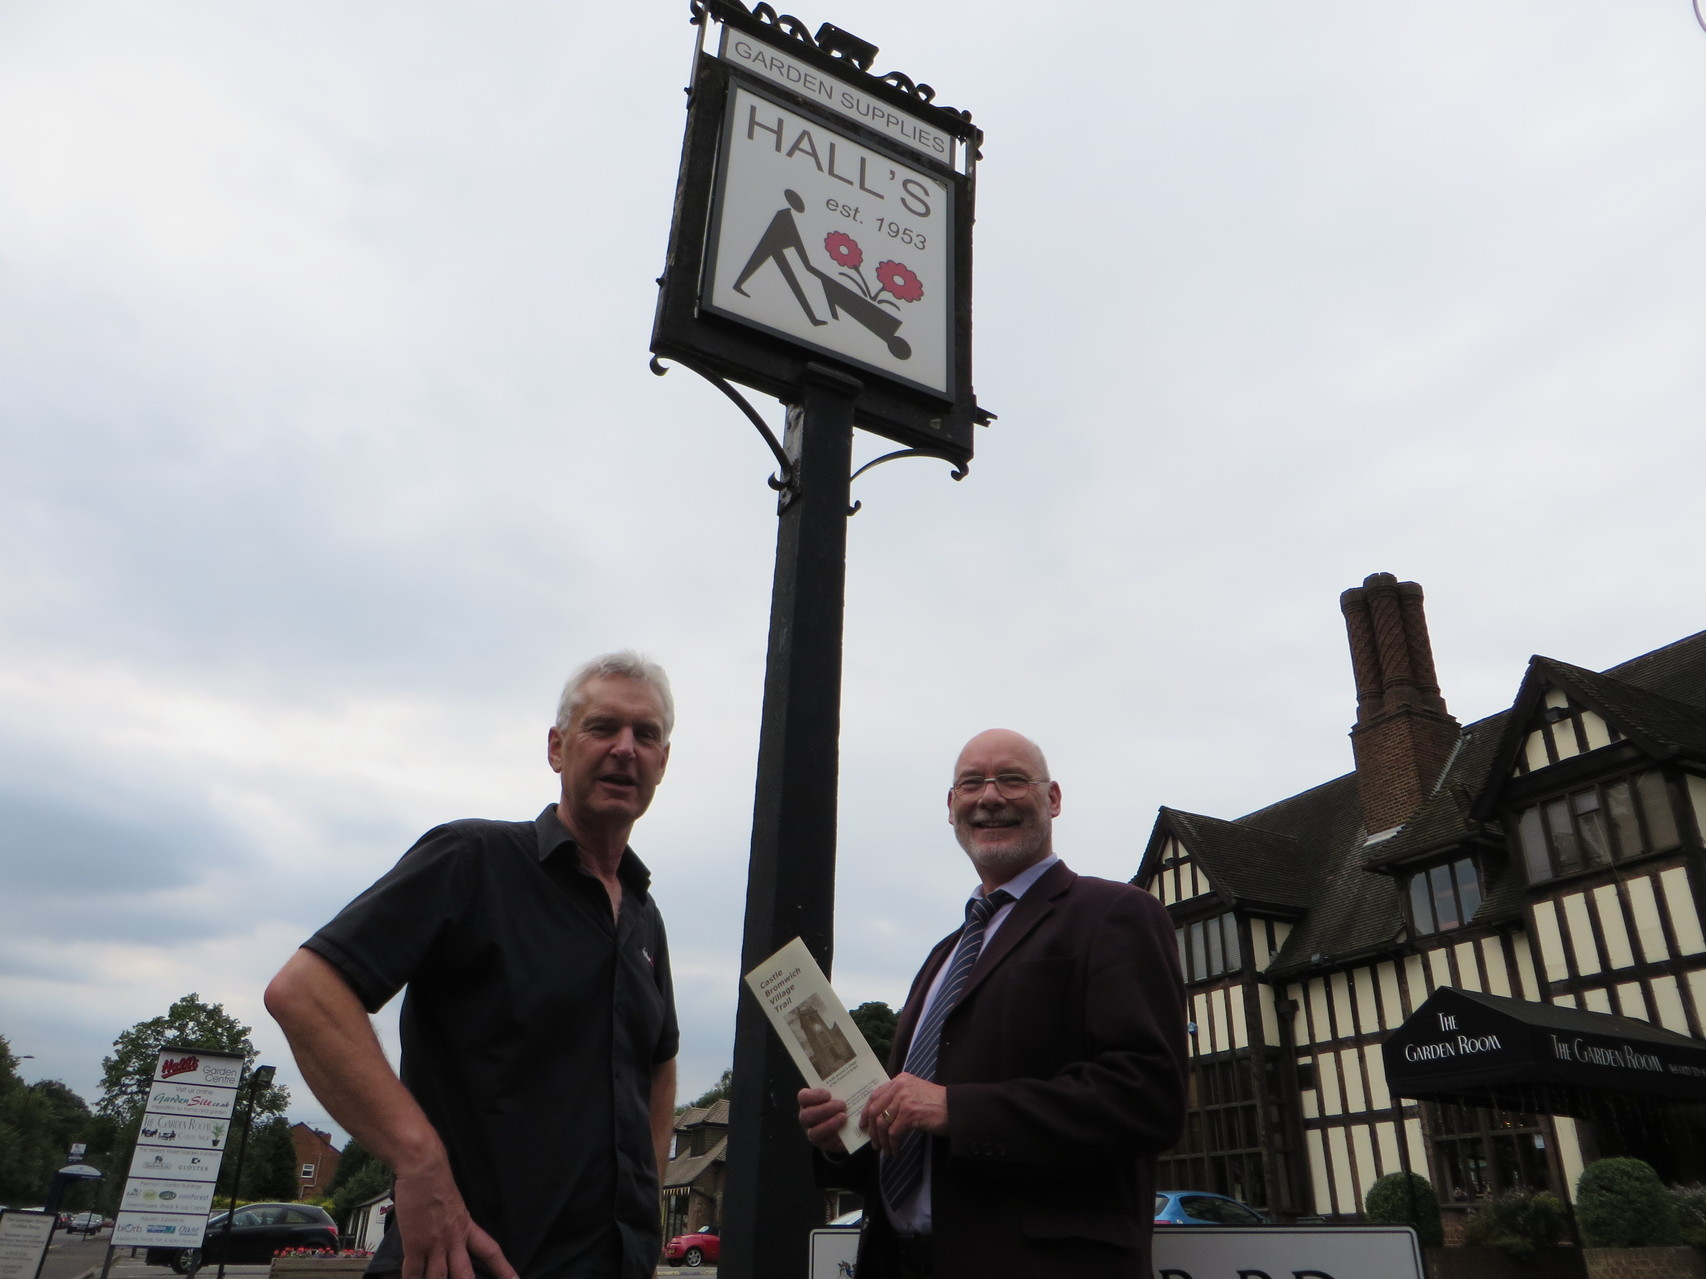 Robert Hall of Hall's Garden Centre sponsors our history booklets.